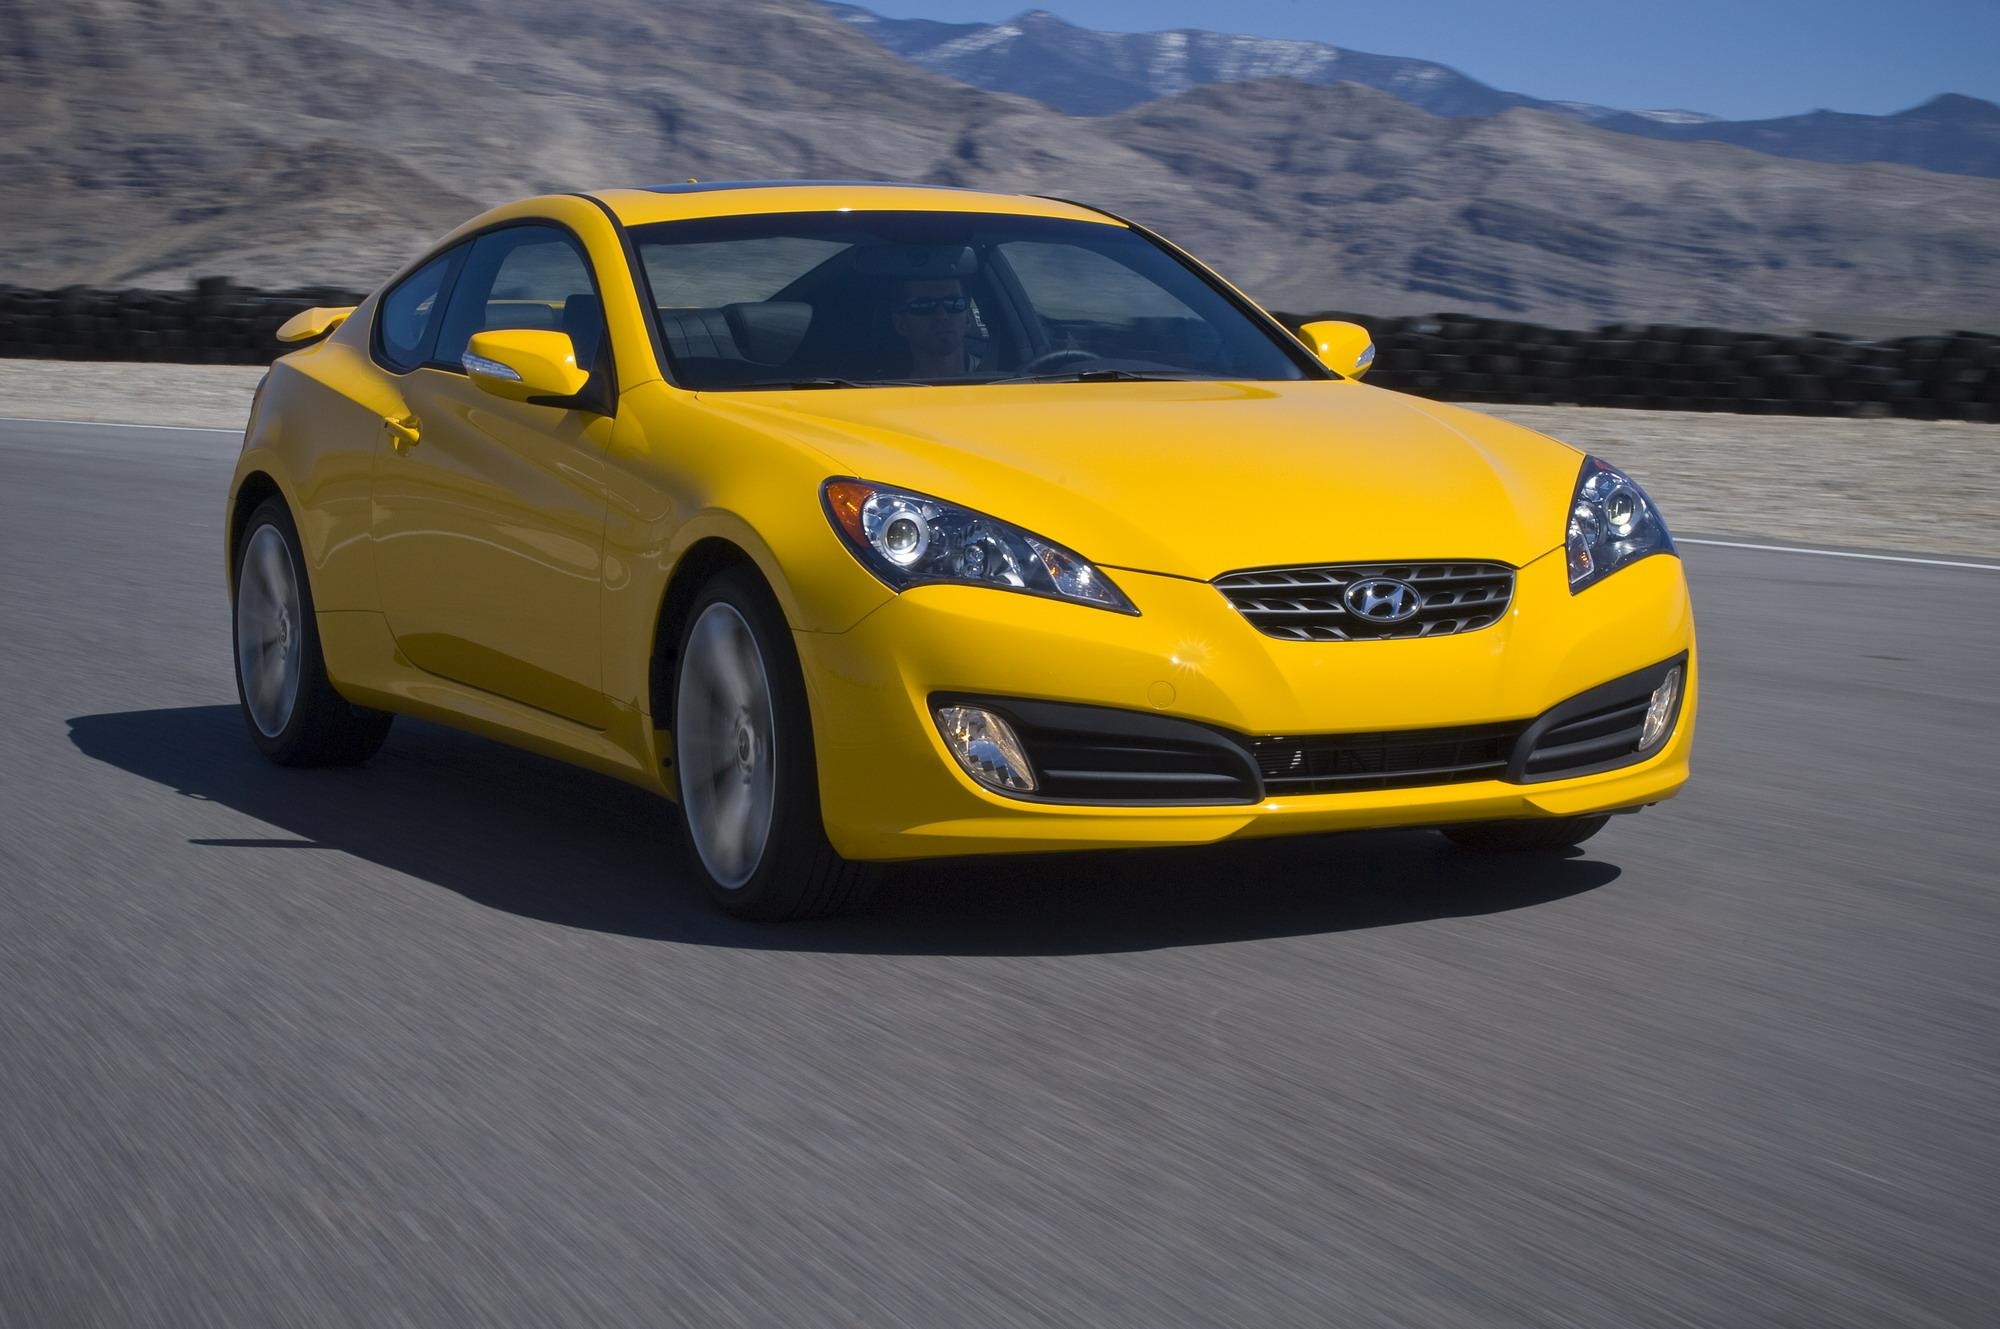 2010 hyundai genesis coupe gallery 329201 top speed. Black Bedroom Furniture Sets. Home Design Ideas